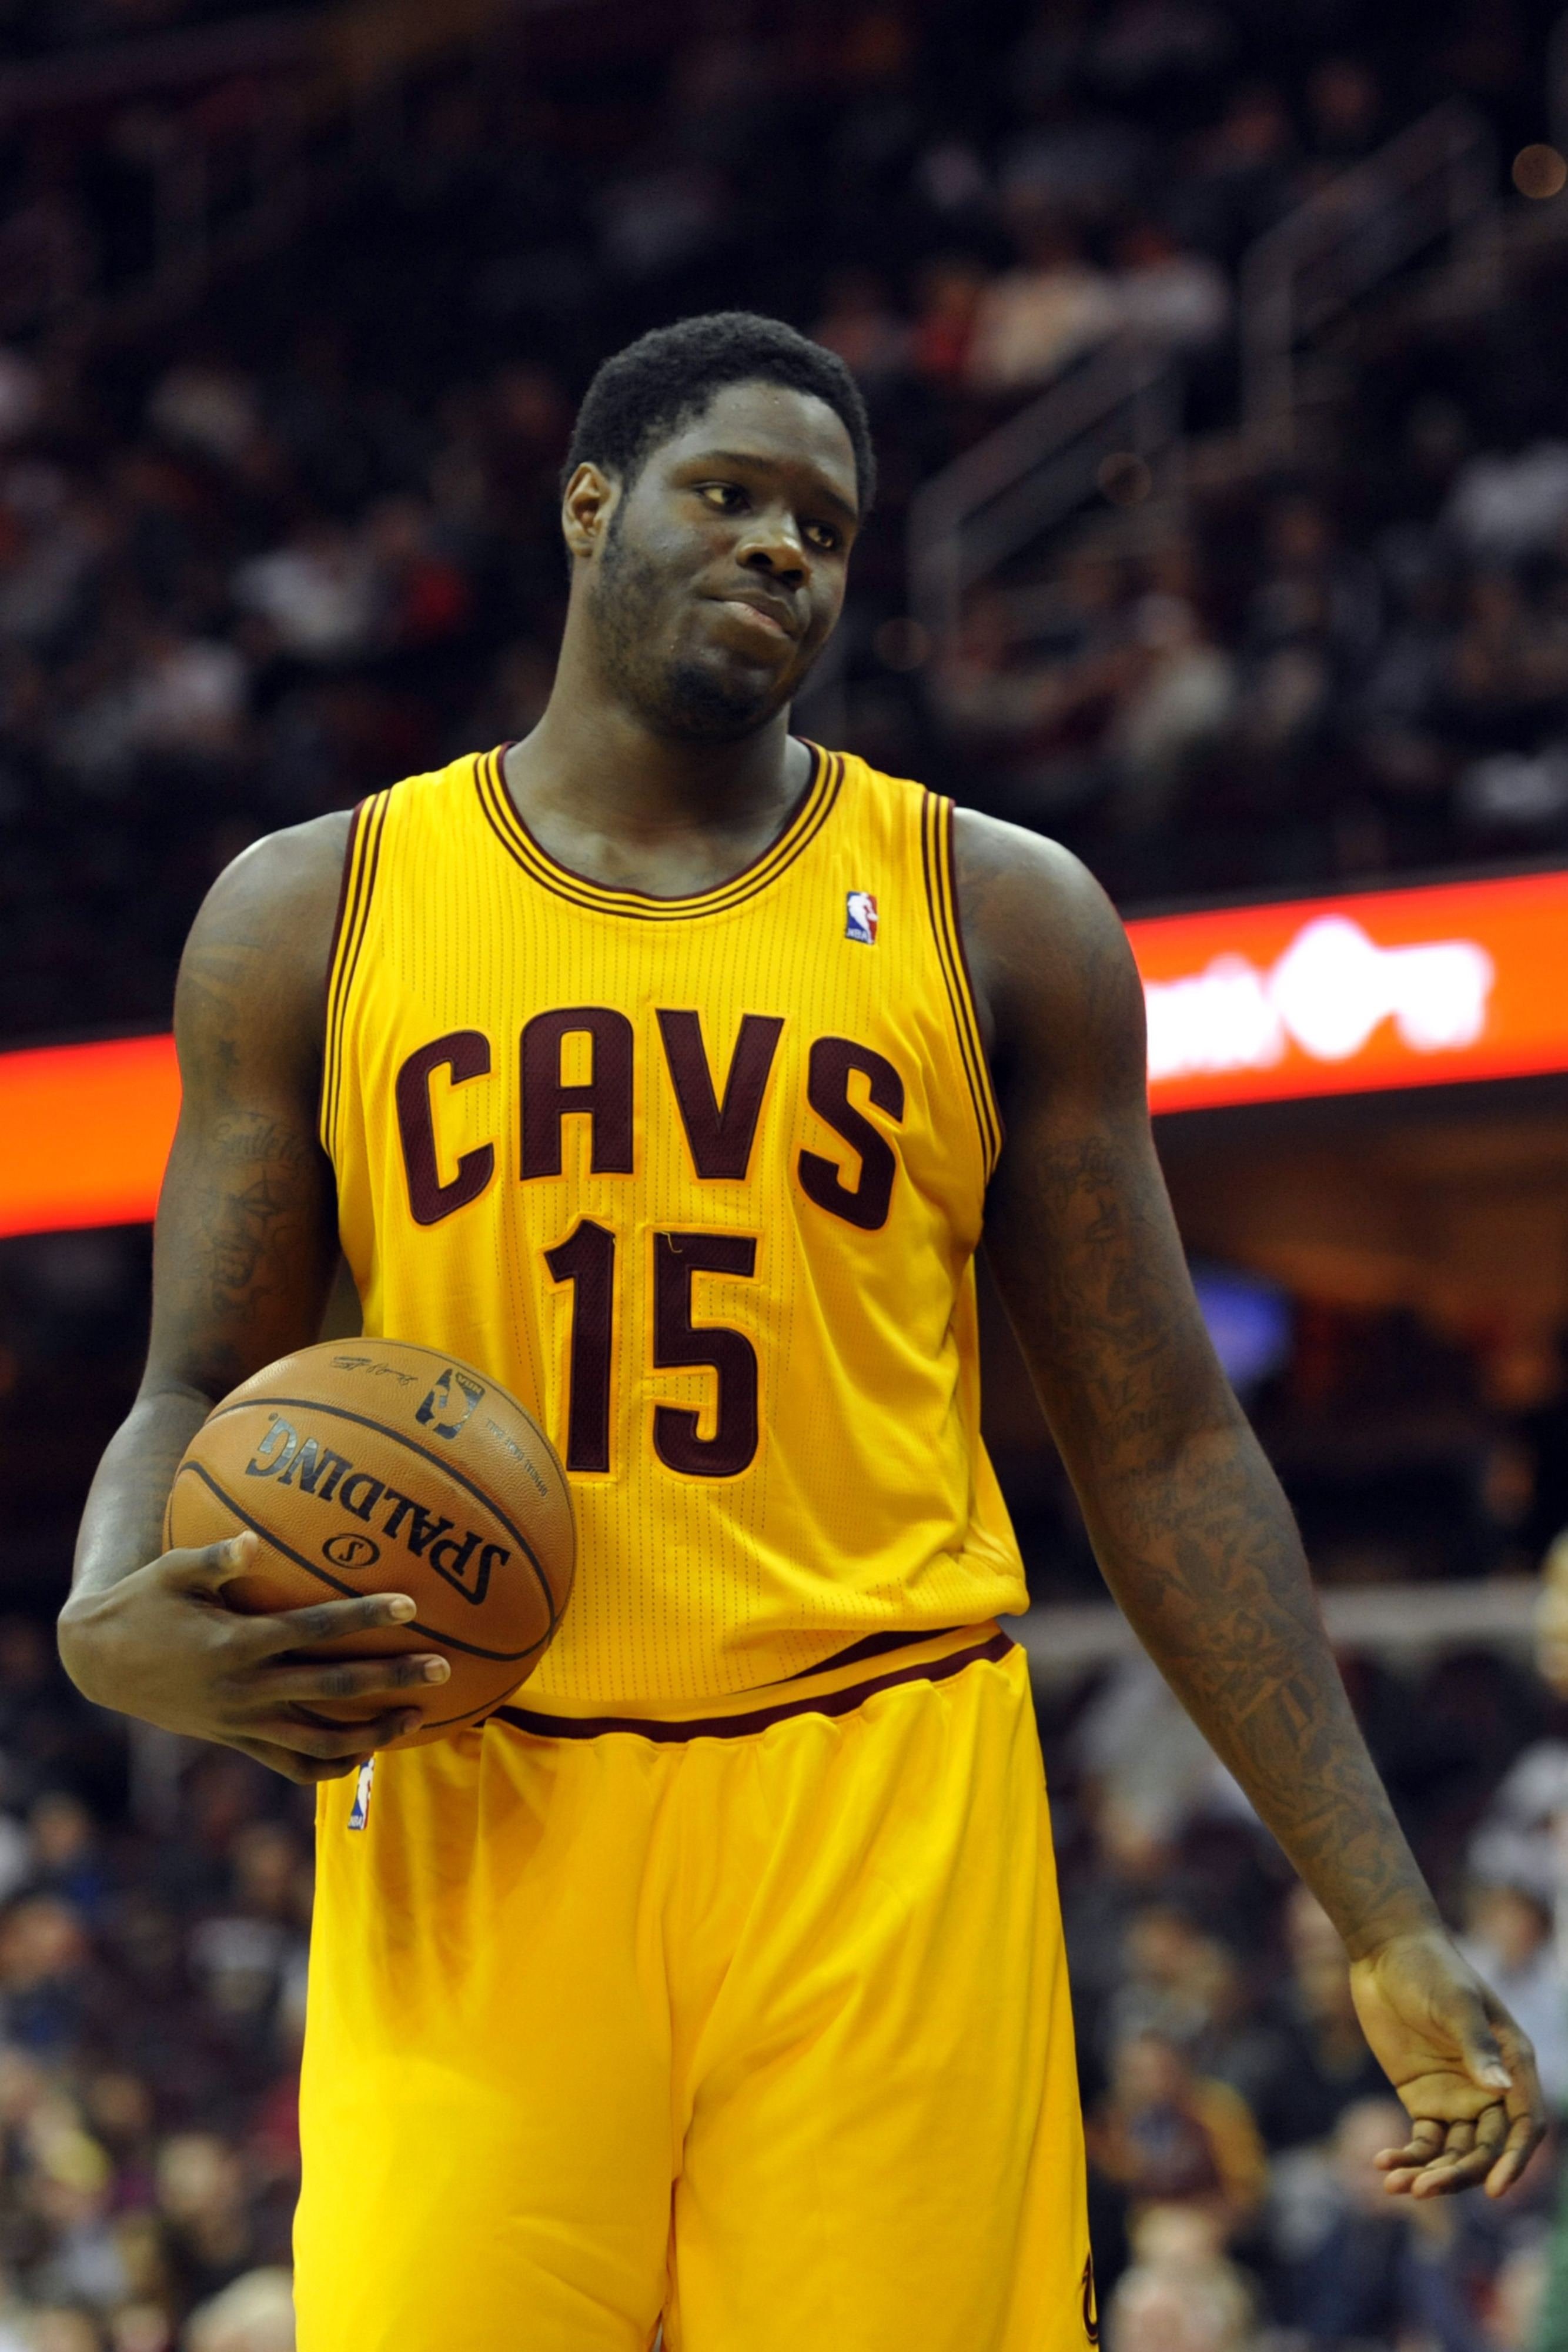 Anthony Bennett's historically bad rookie season